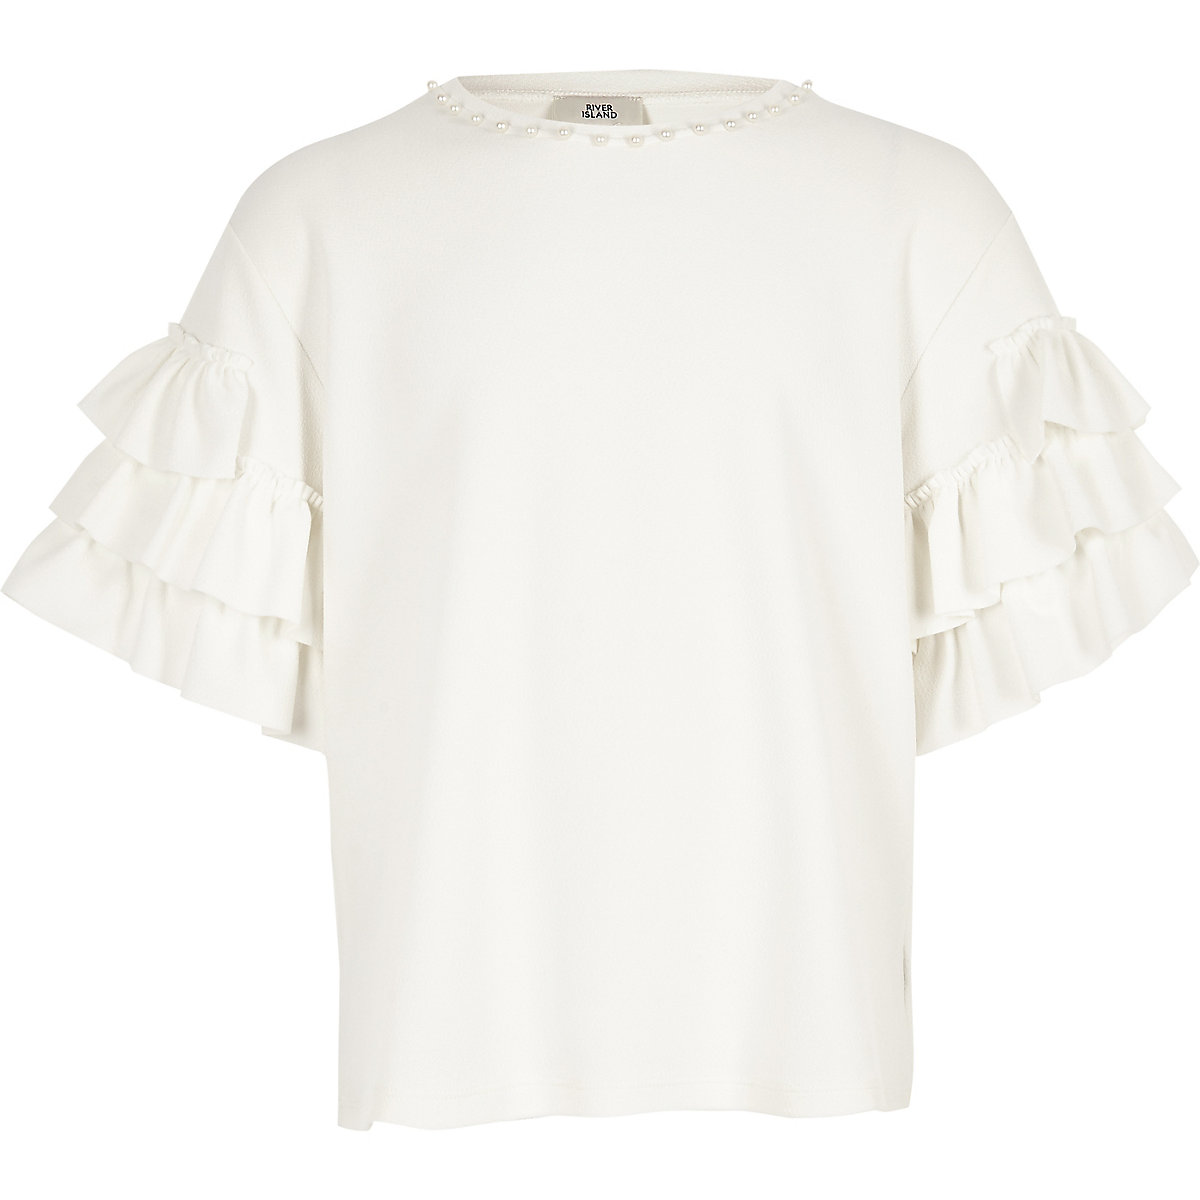 Girls white pearl trim frill top